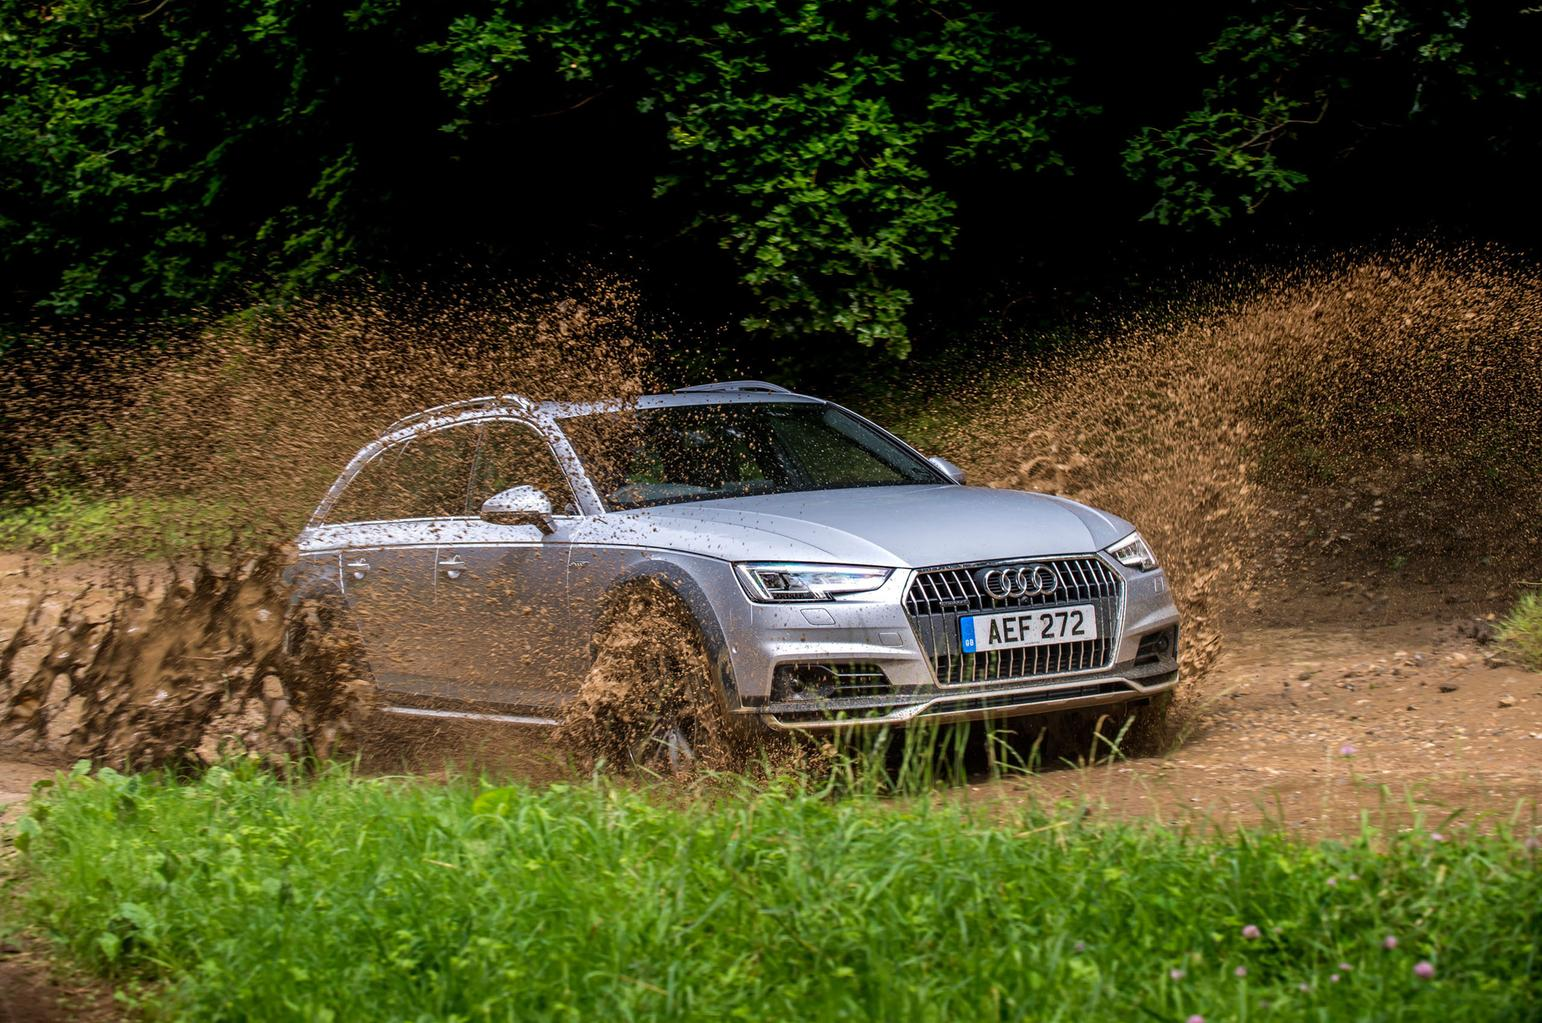 2016 Audi A4 Allroad 3.0 TDI quattro 272 review